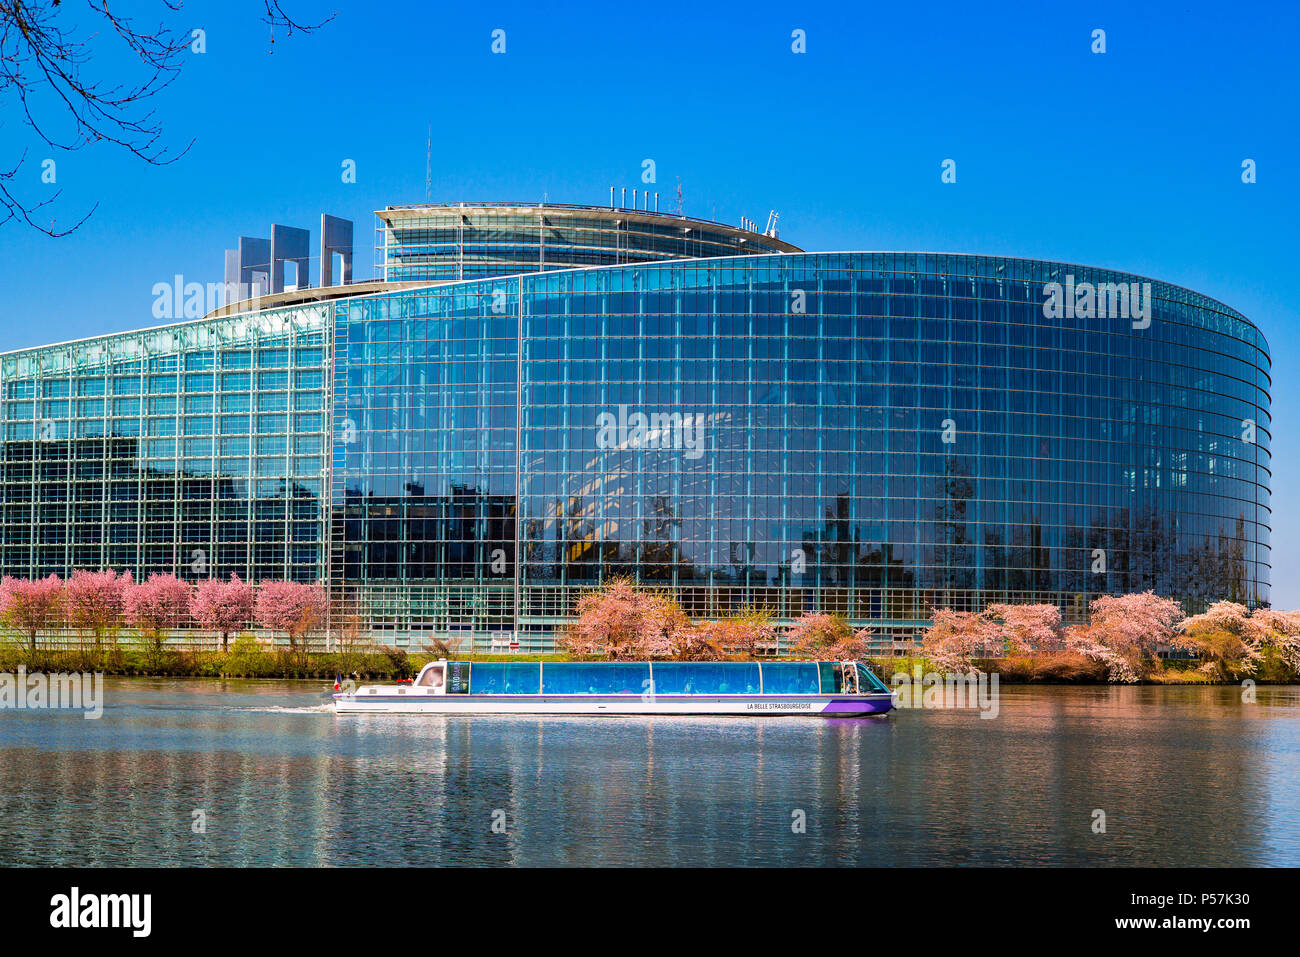 Strasbourg, European Parliament, Louise Weiss building, sightseeing tour boat, cherry blossoms, Ill river, Alsace, France, Europe, - Stock Image